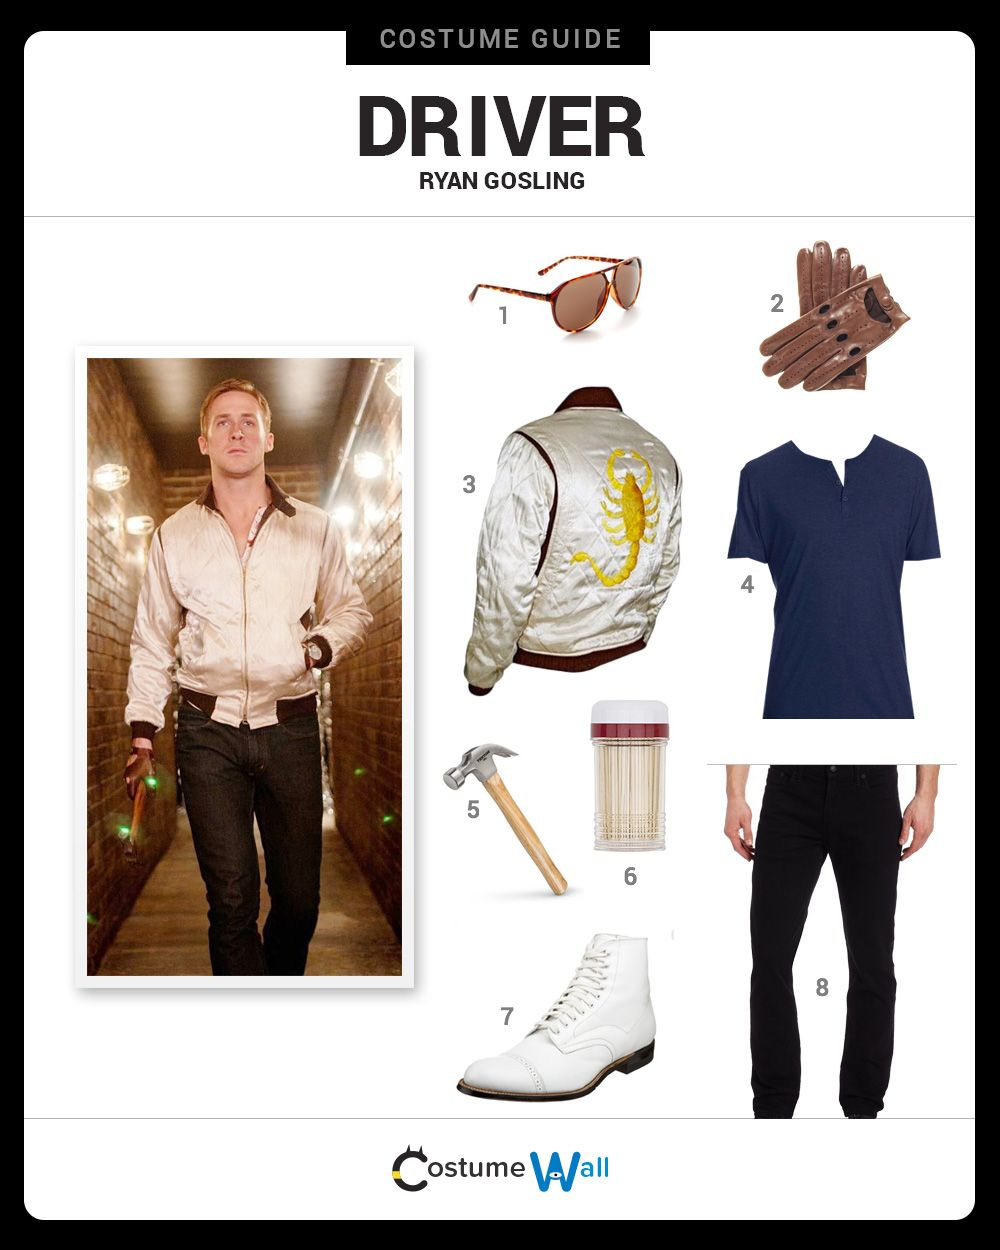 Dress Like Driver Disneyland Dress Couples Costumes Mens Outfits